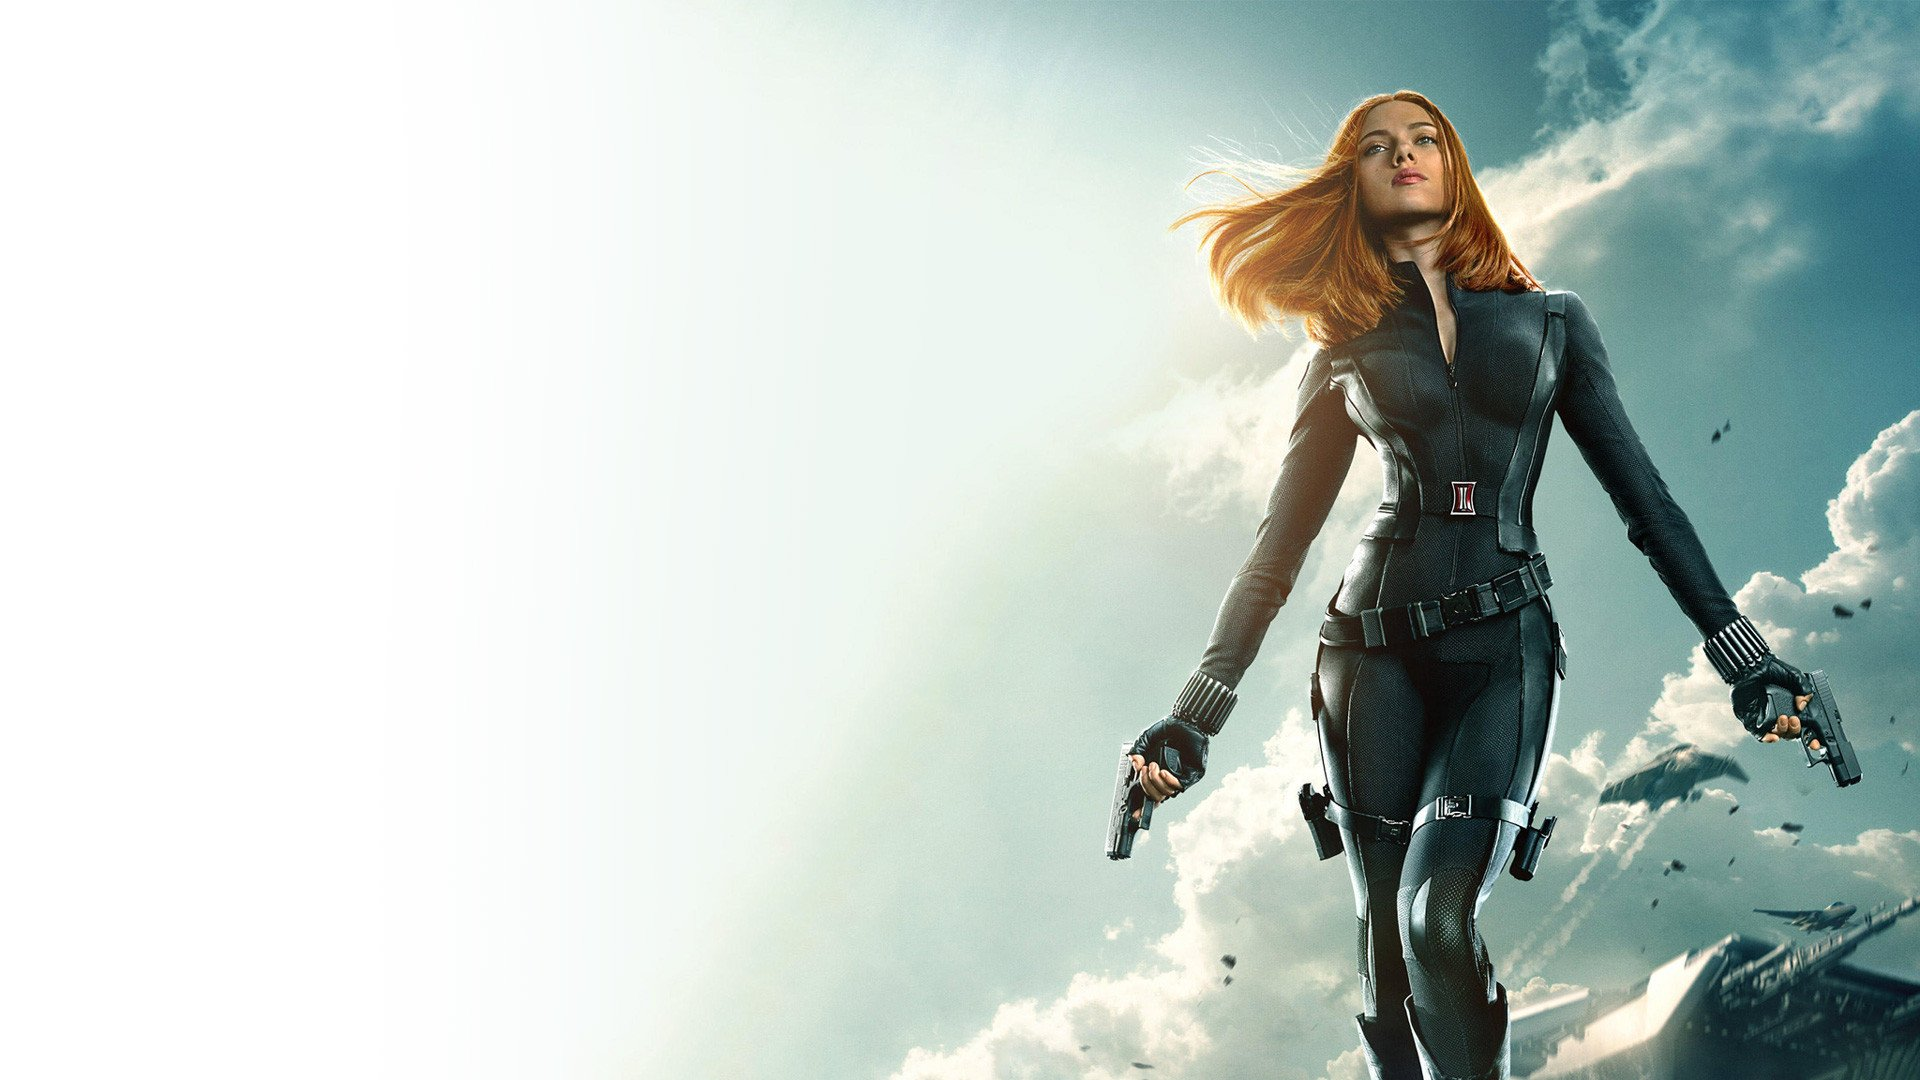 Scarlett johansson black widow wallpaper - photo#8